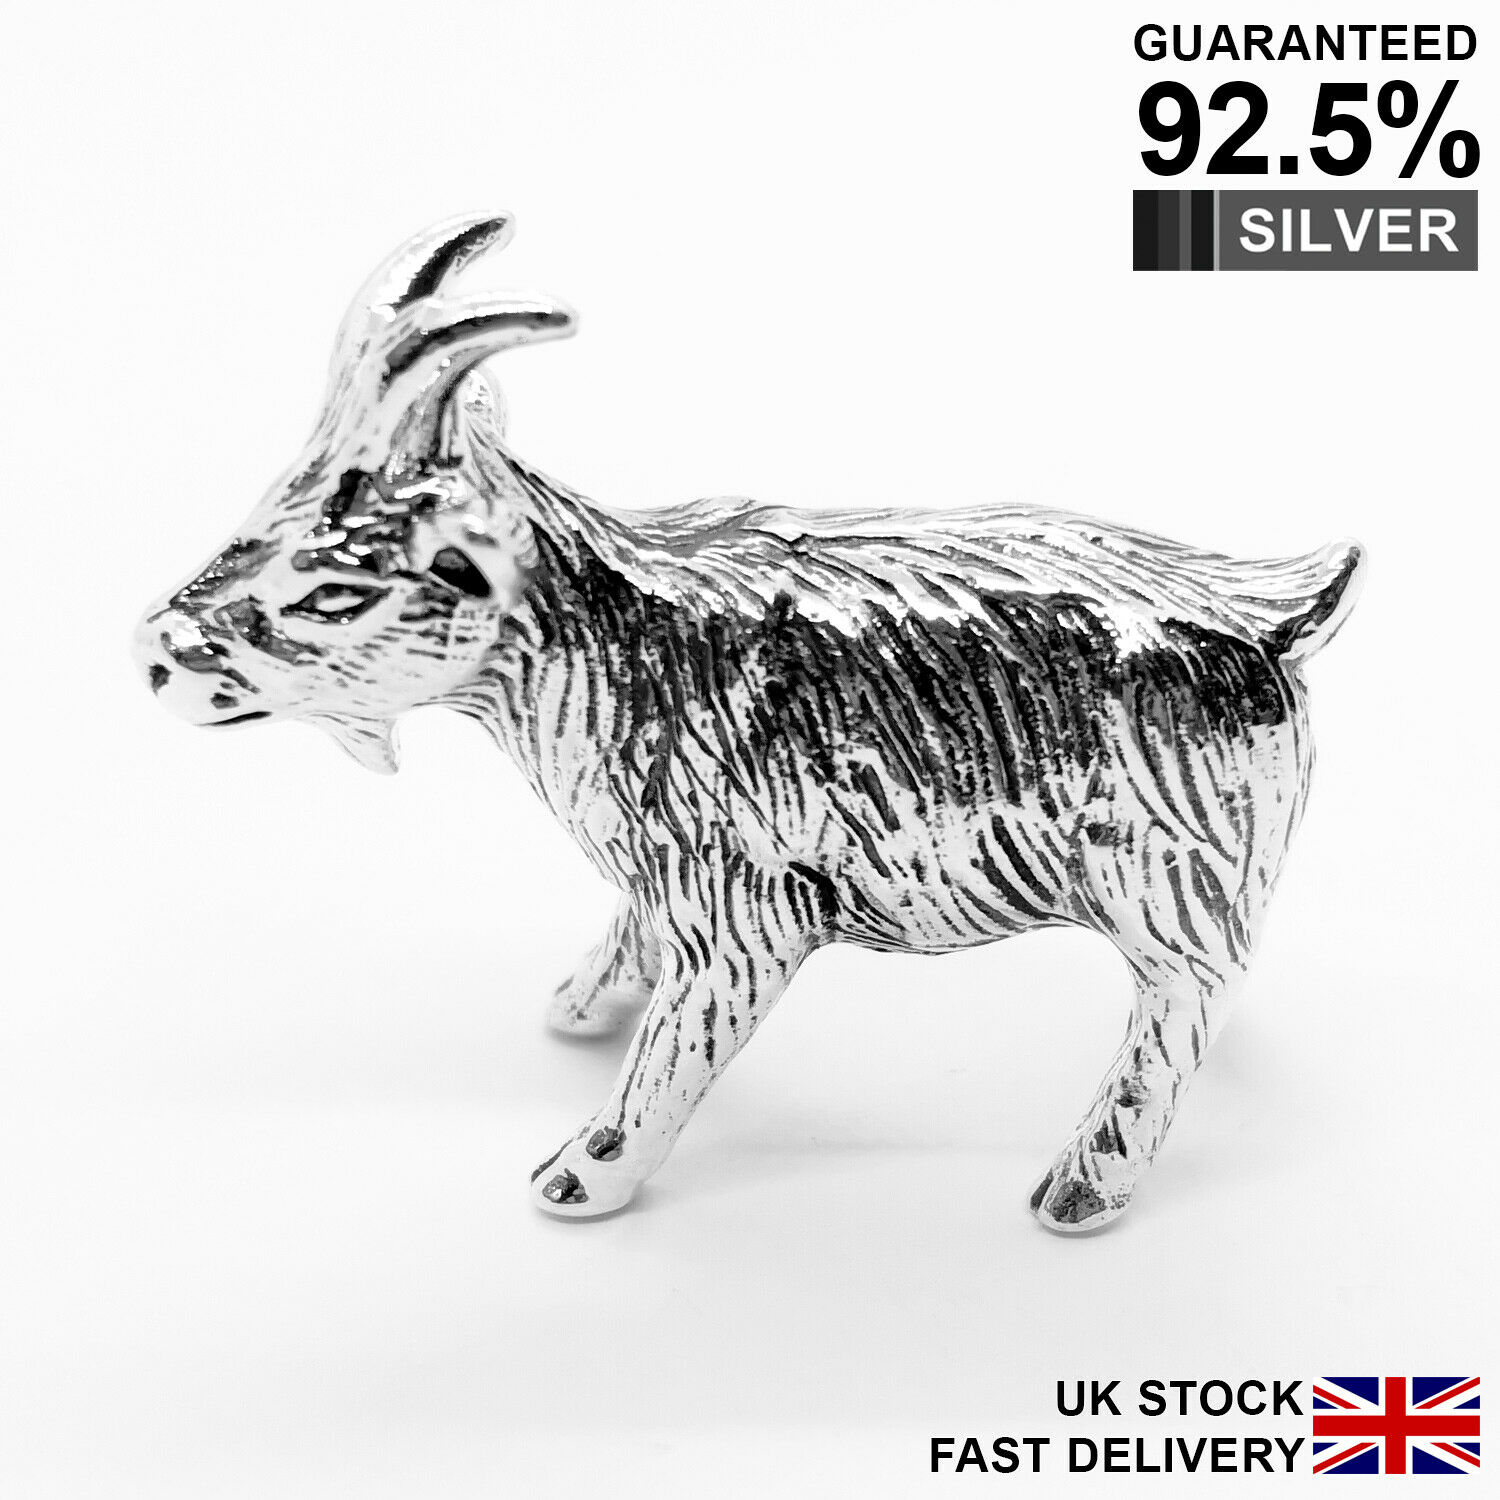 925 Sterling Silver Miniature Goat